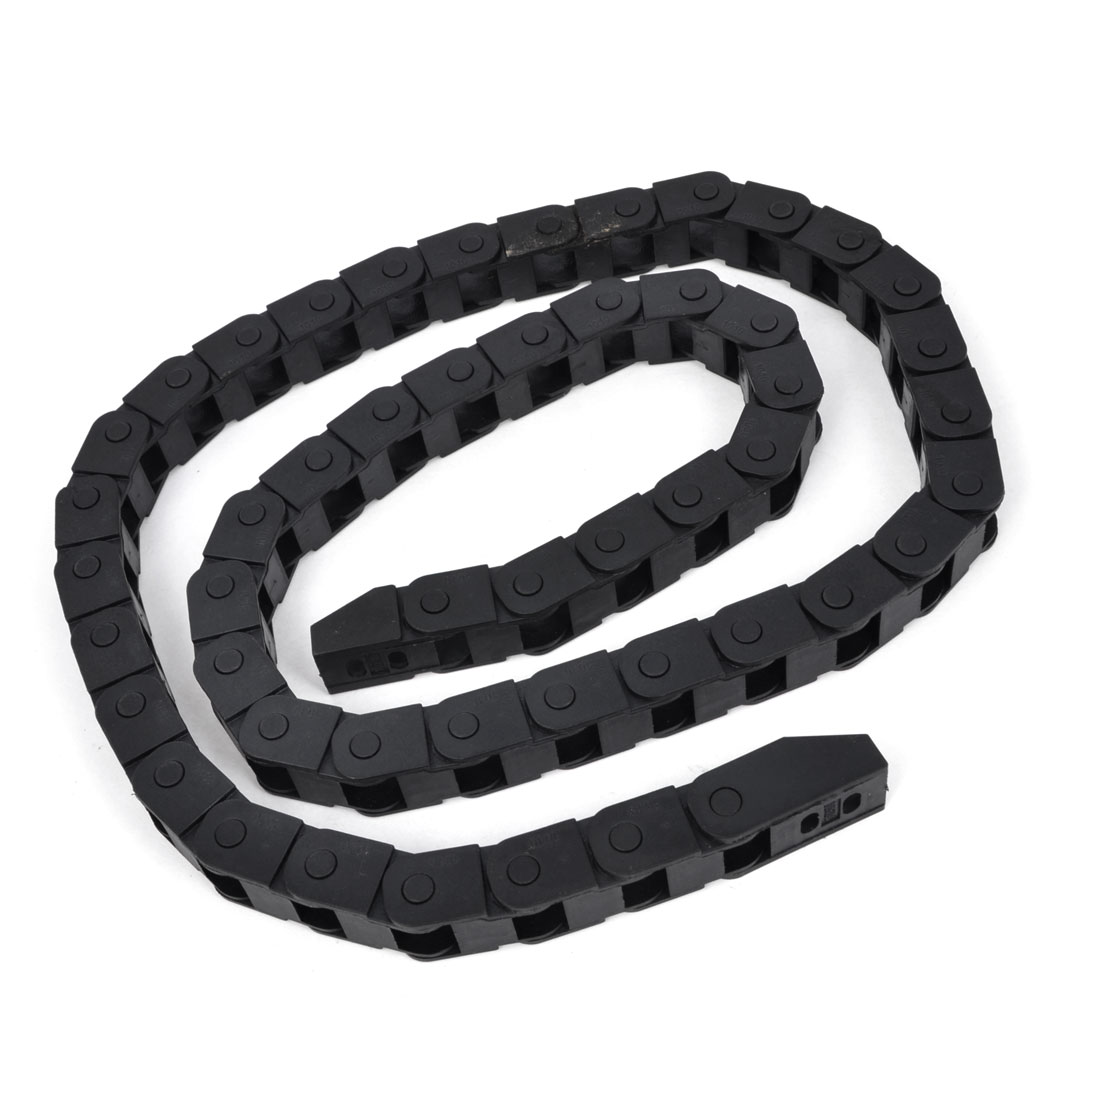 Black Open Type Towline Cable Carrier Drag Chain 10mm x 10mm 105cm